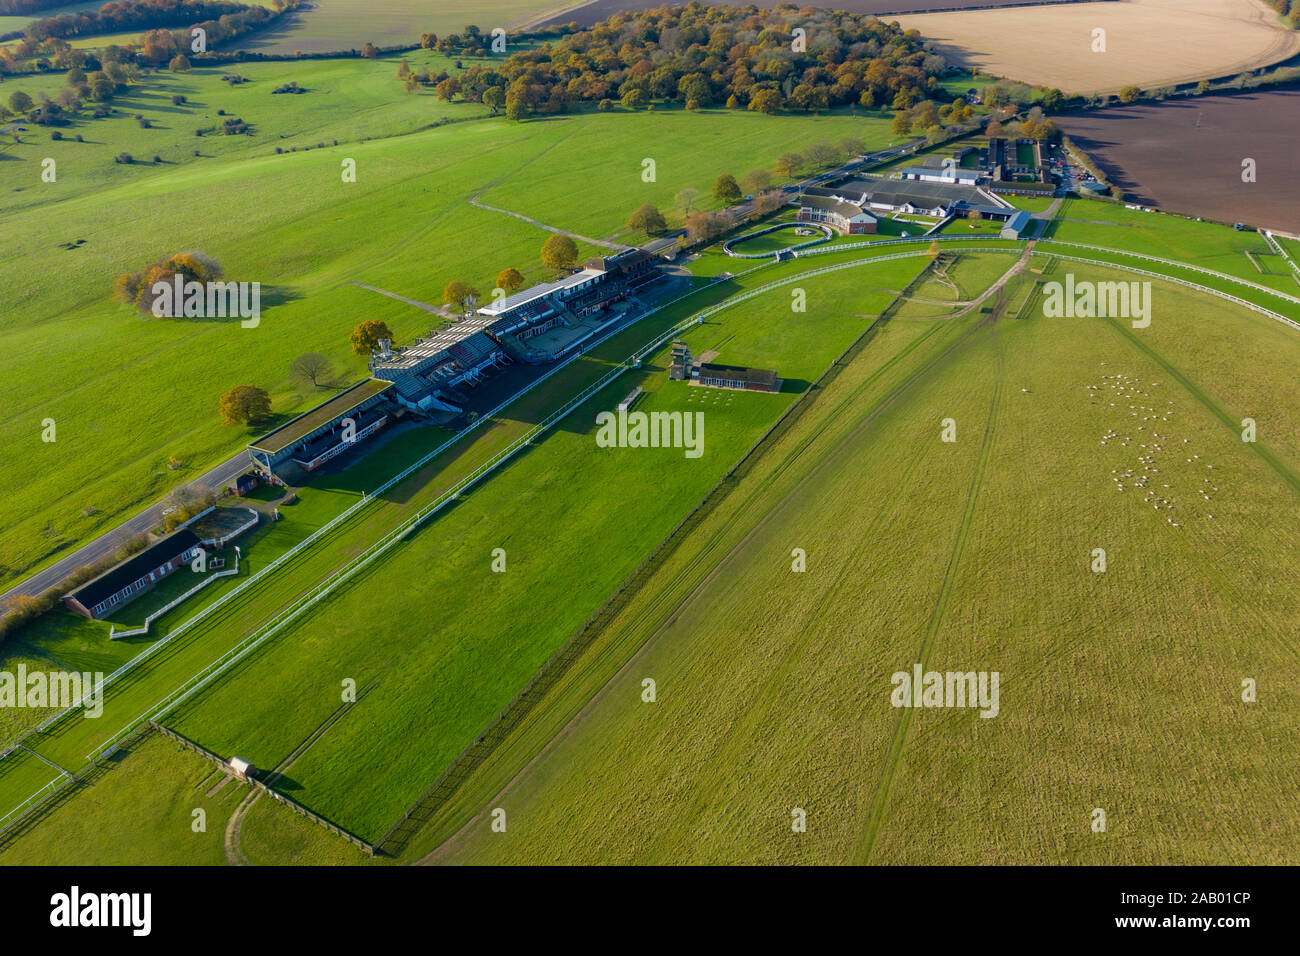 Page 2 Race Track Above High Resolution Stock Photography And Images Alamy